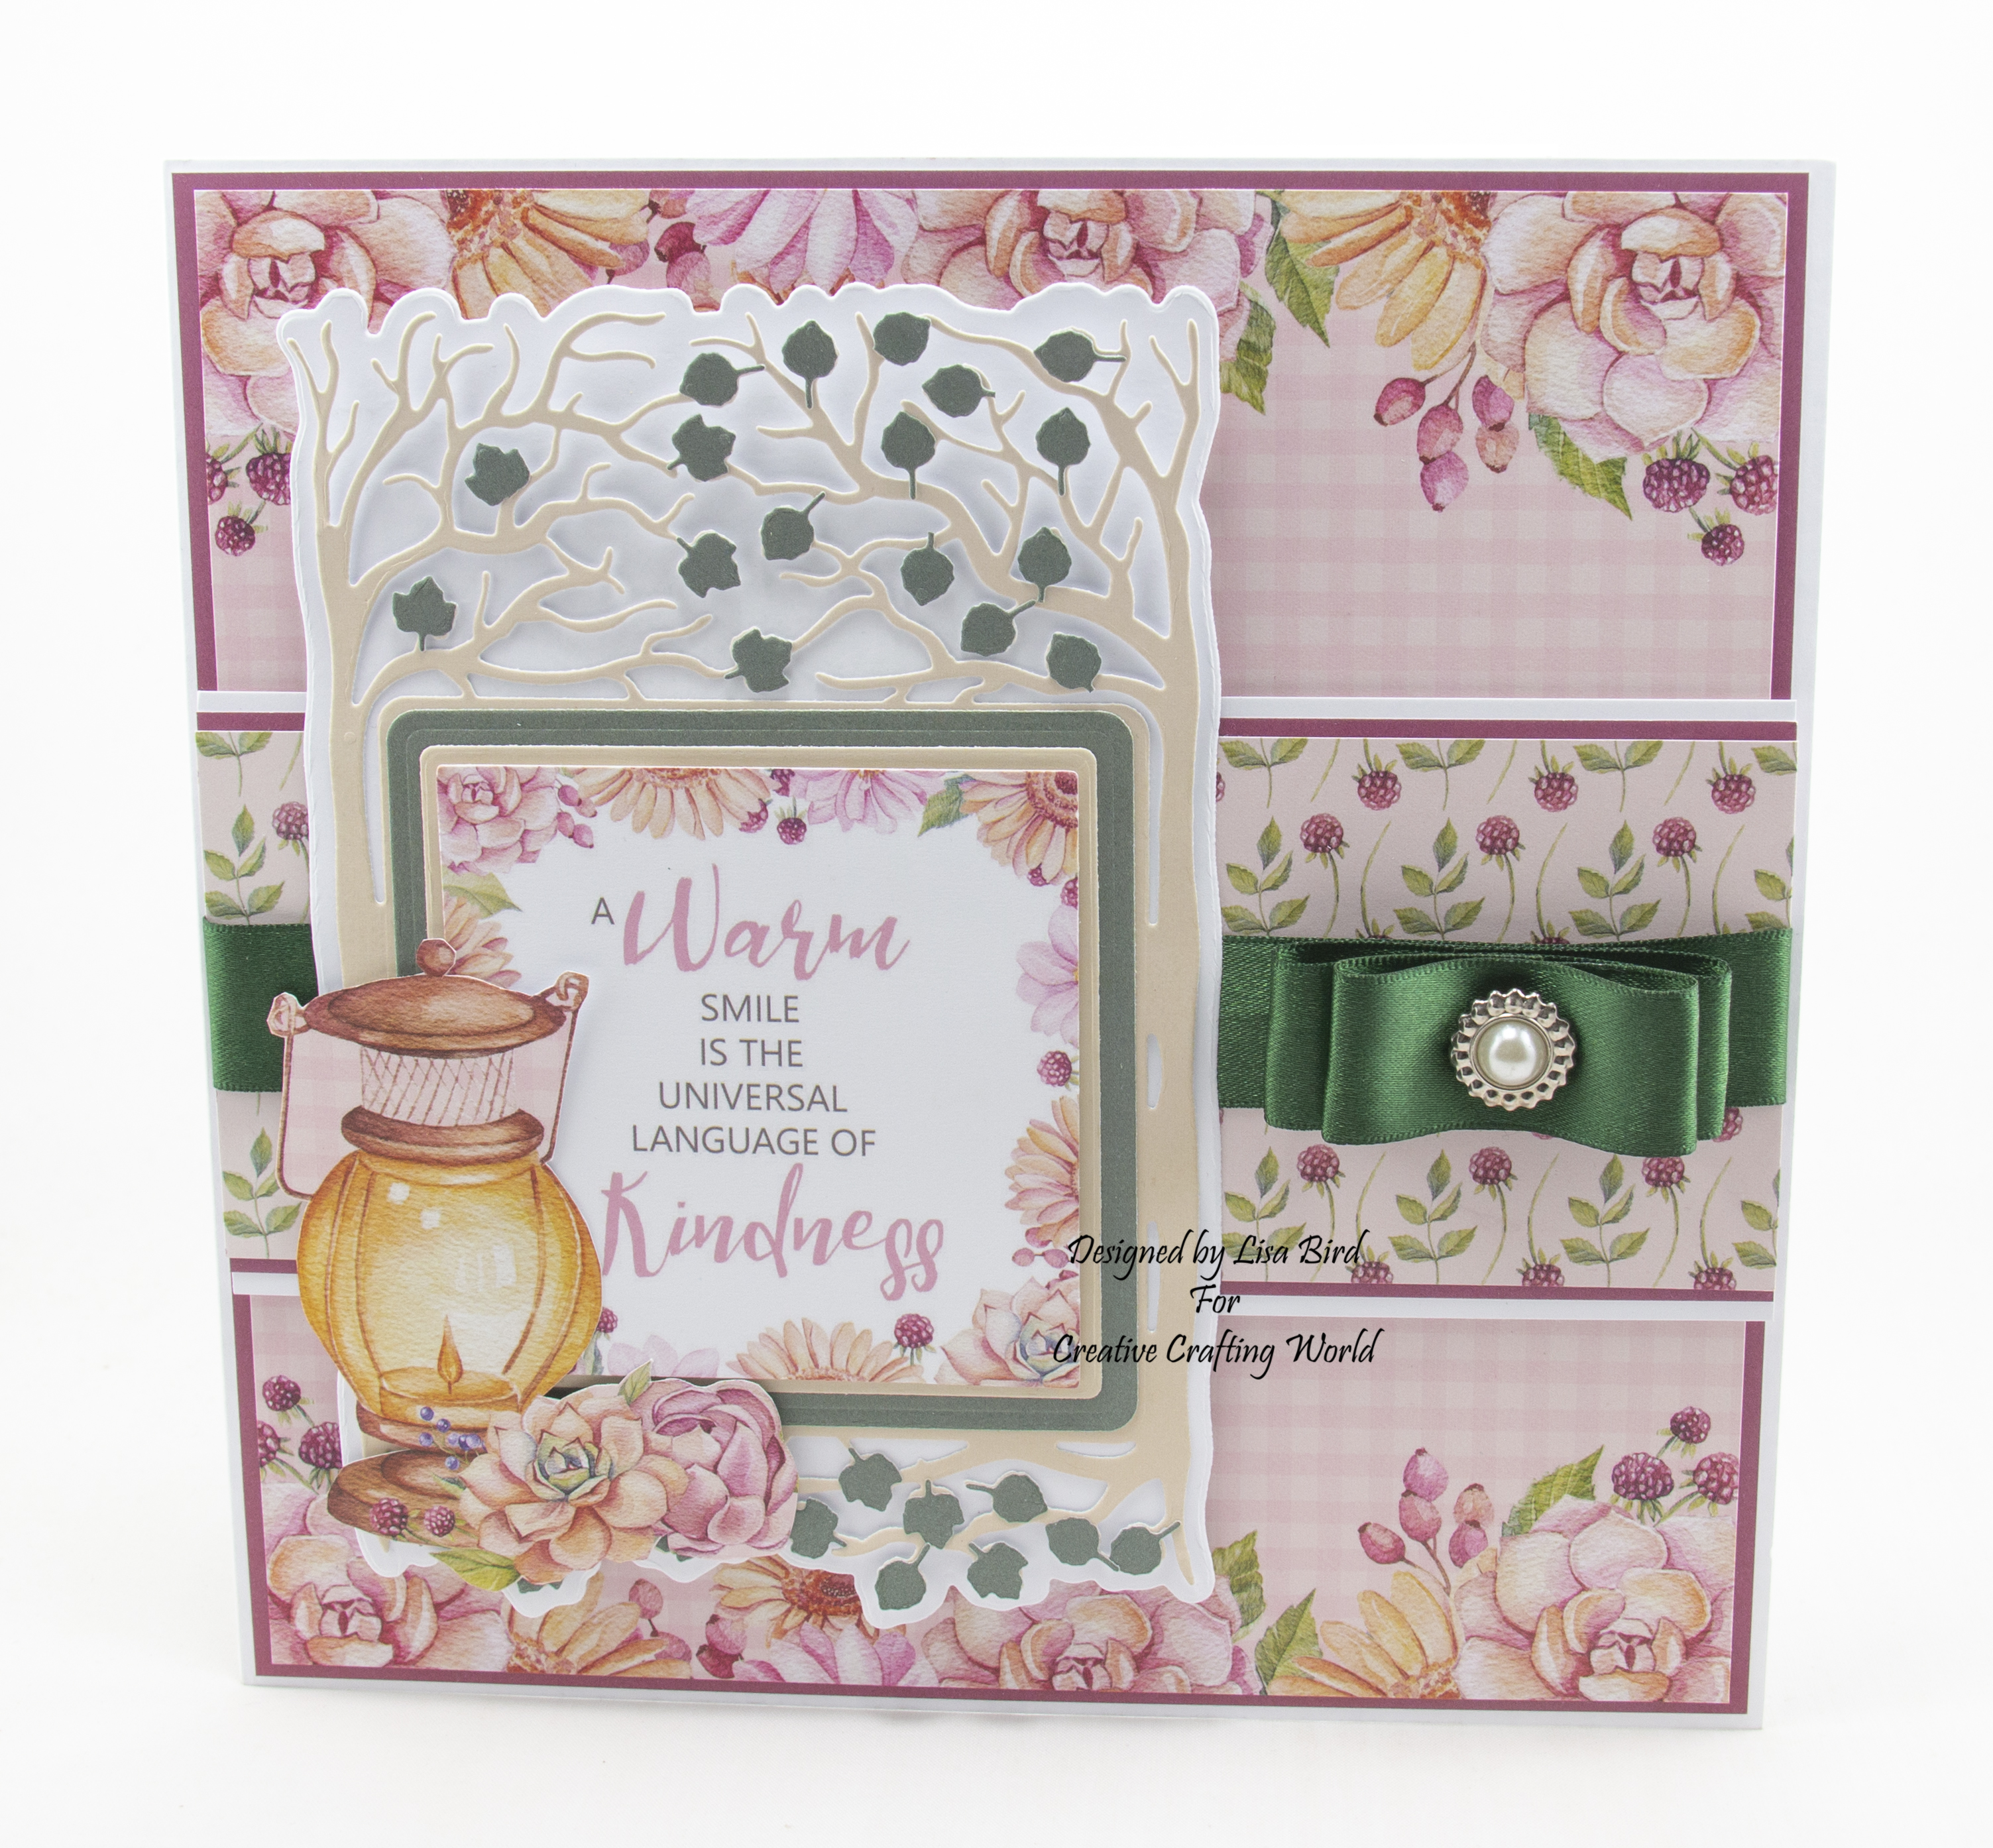 Today's handmade card has been created using a new paper collection called Grandma's Garden from Creative Crafting World.